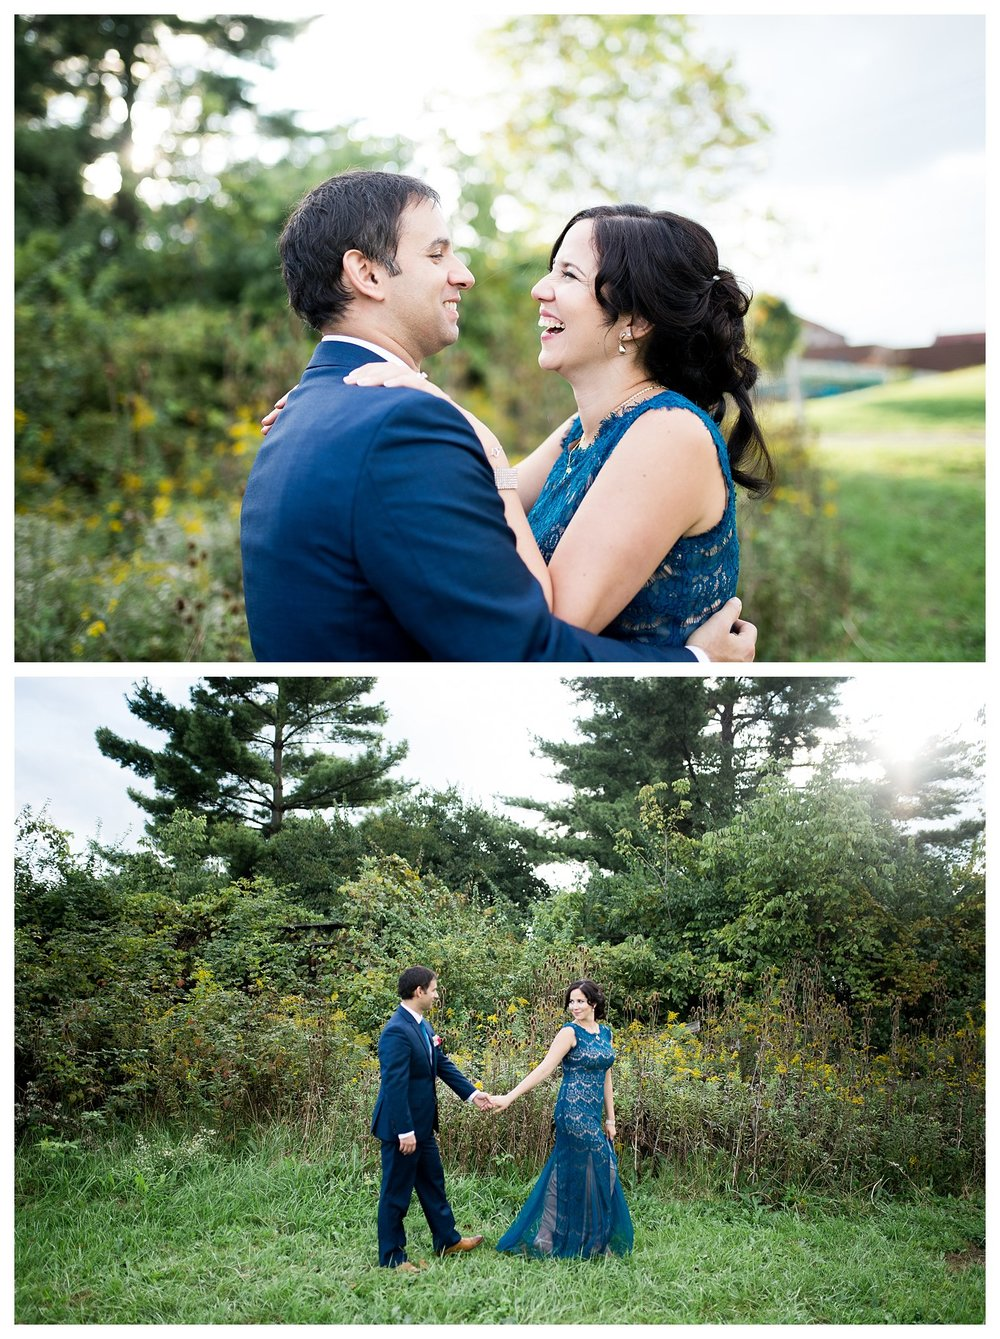 everleigh-photography-cincinnati-wedding-photographer-great-wolf-lodge-elopement-11